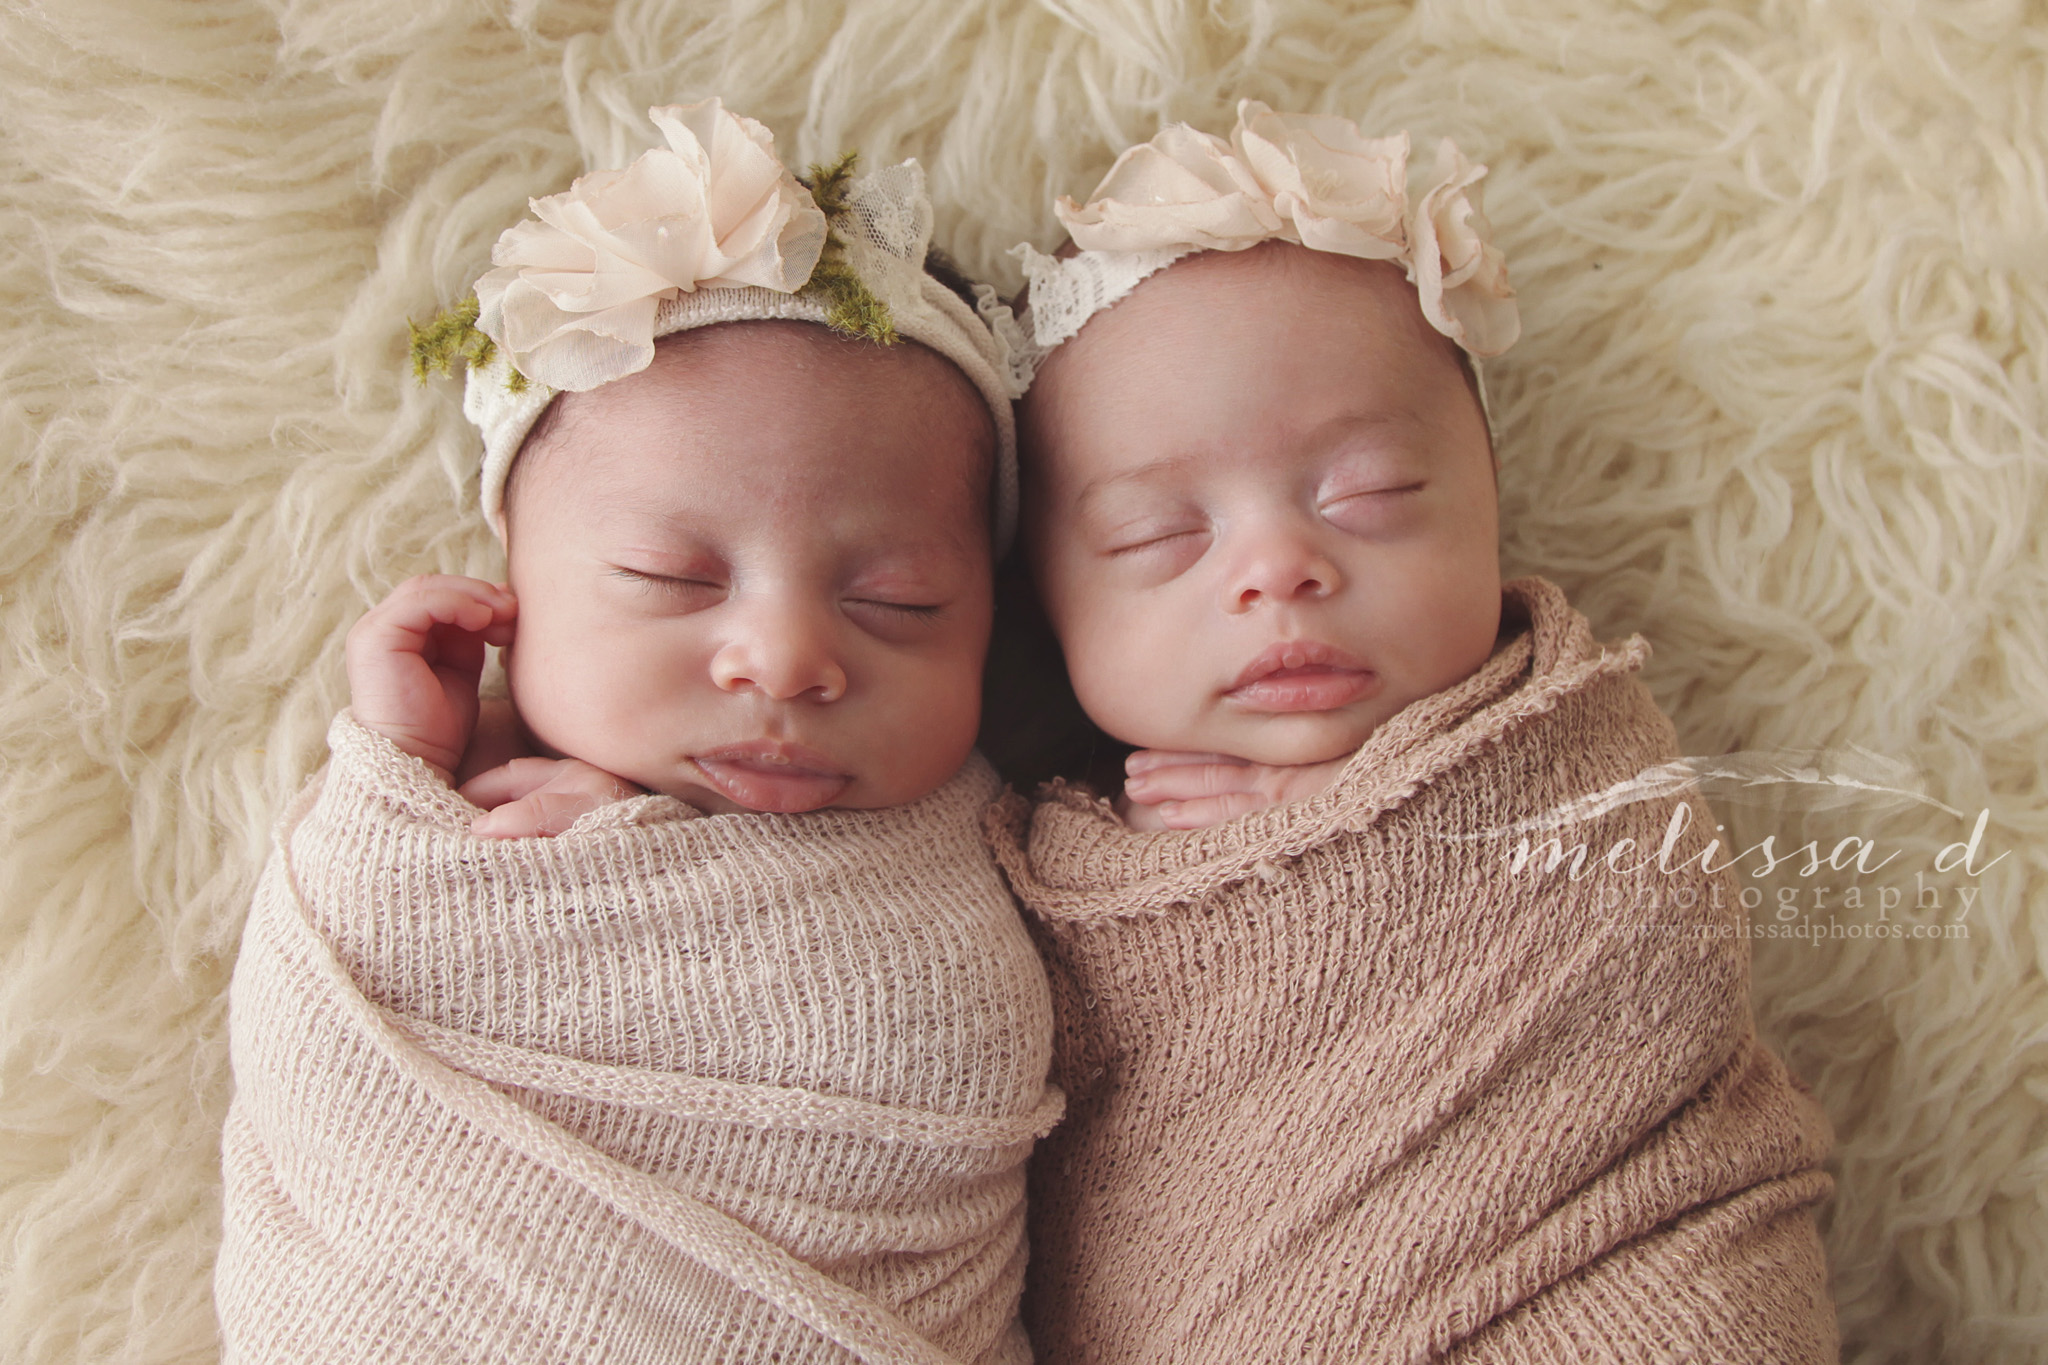 Ft. Worth Newborn Twin Photographer wrapped